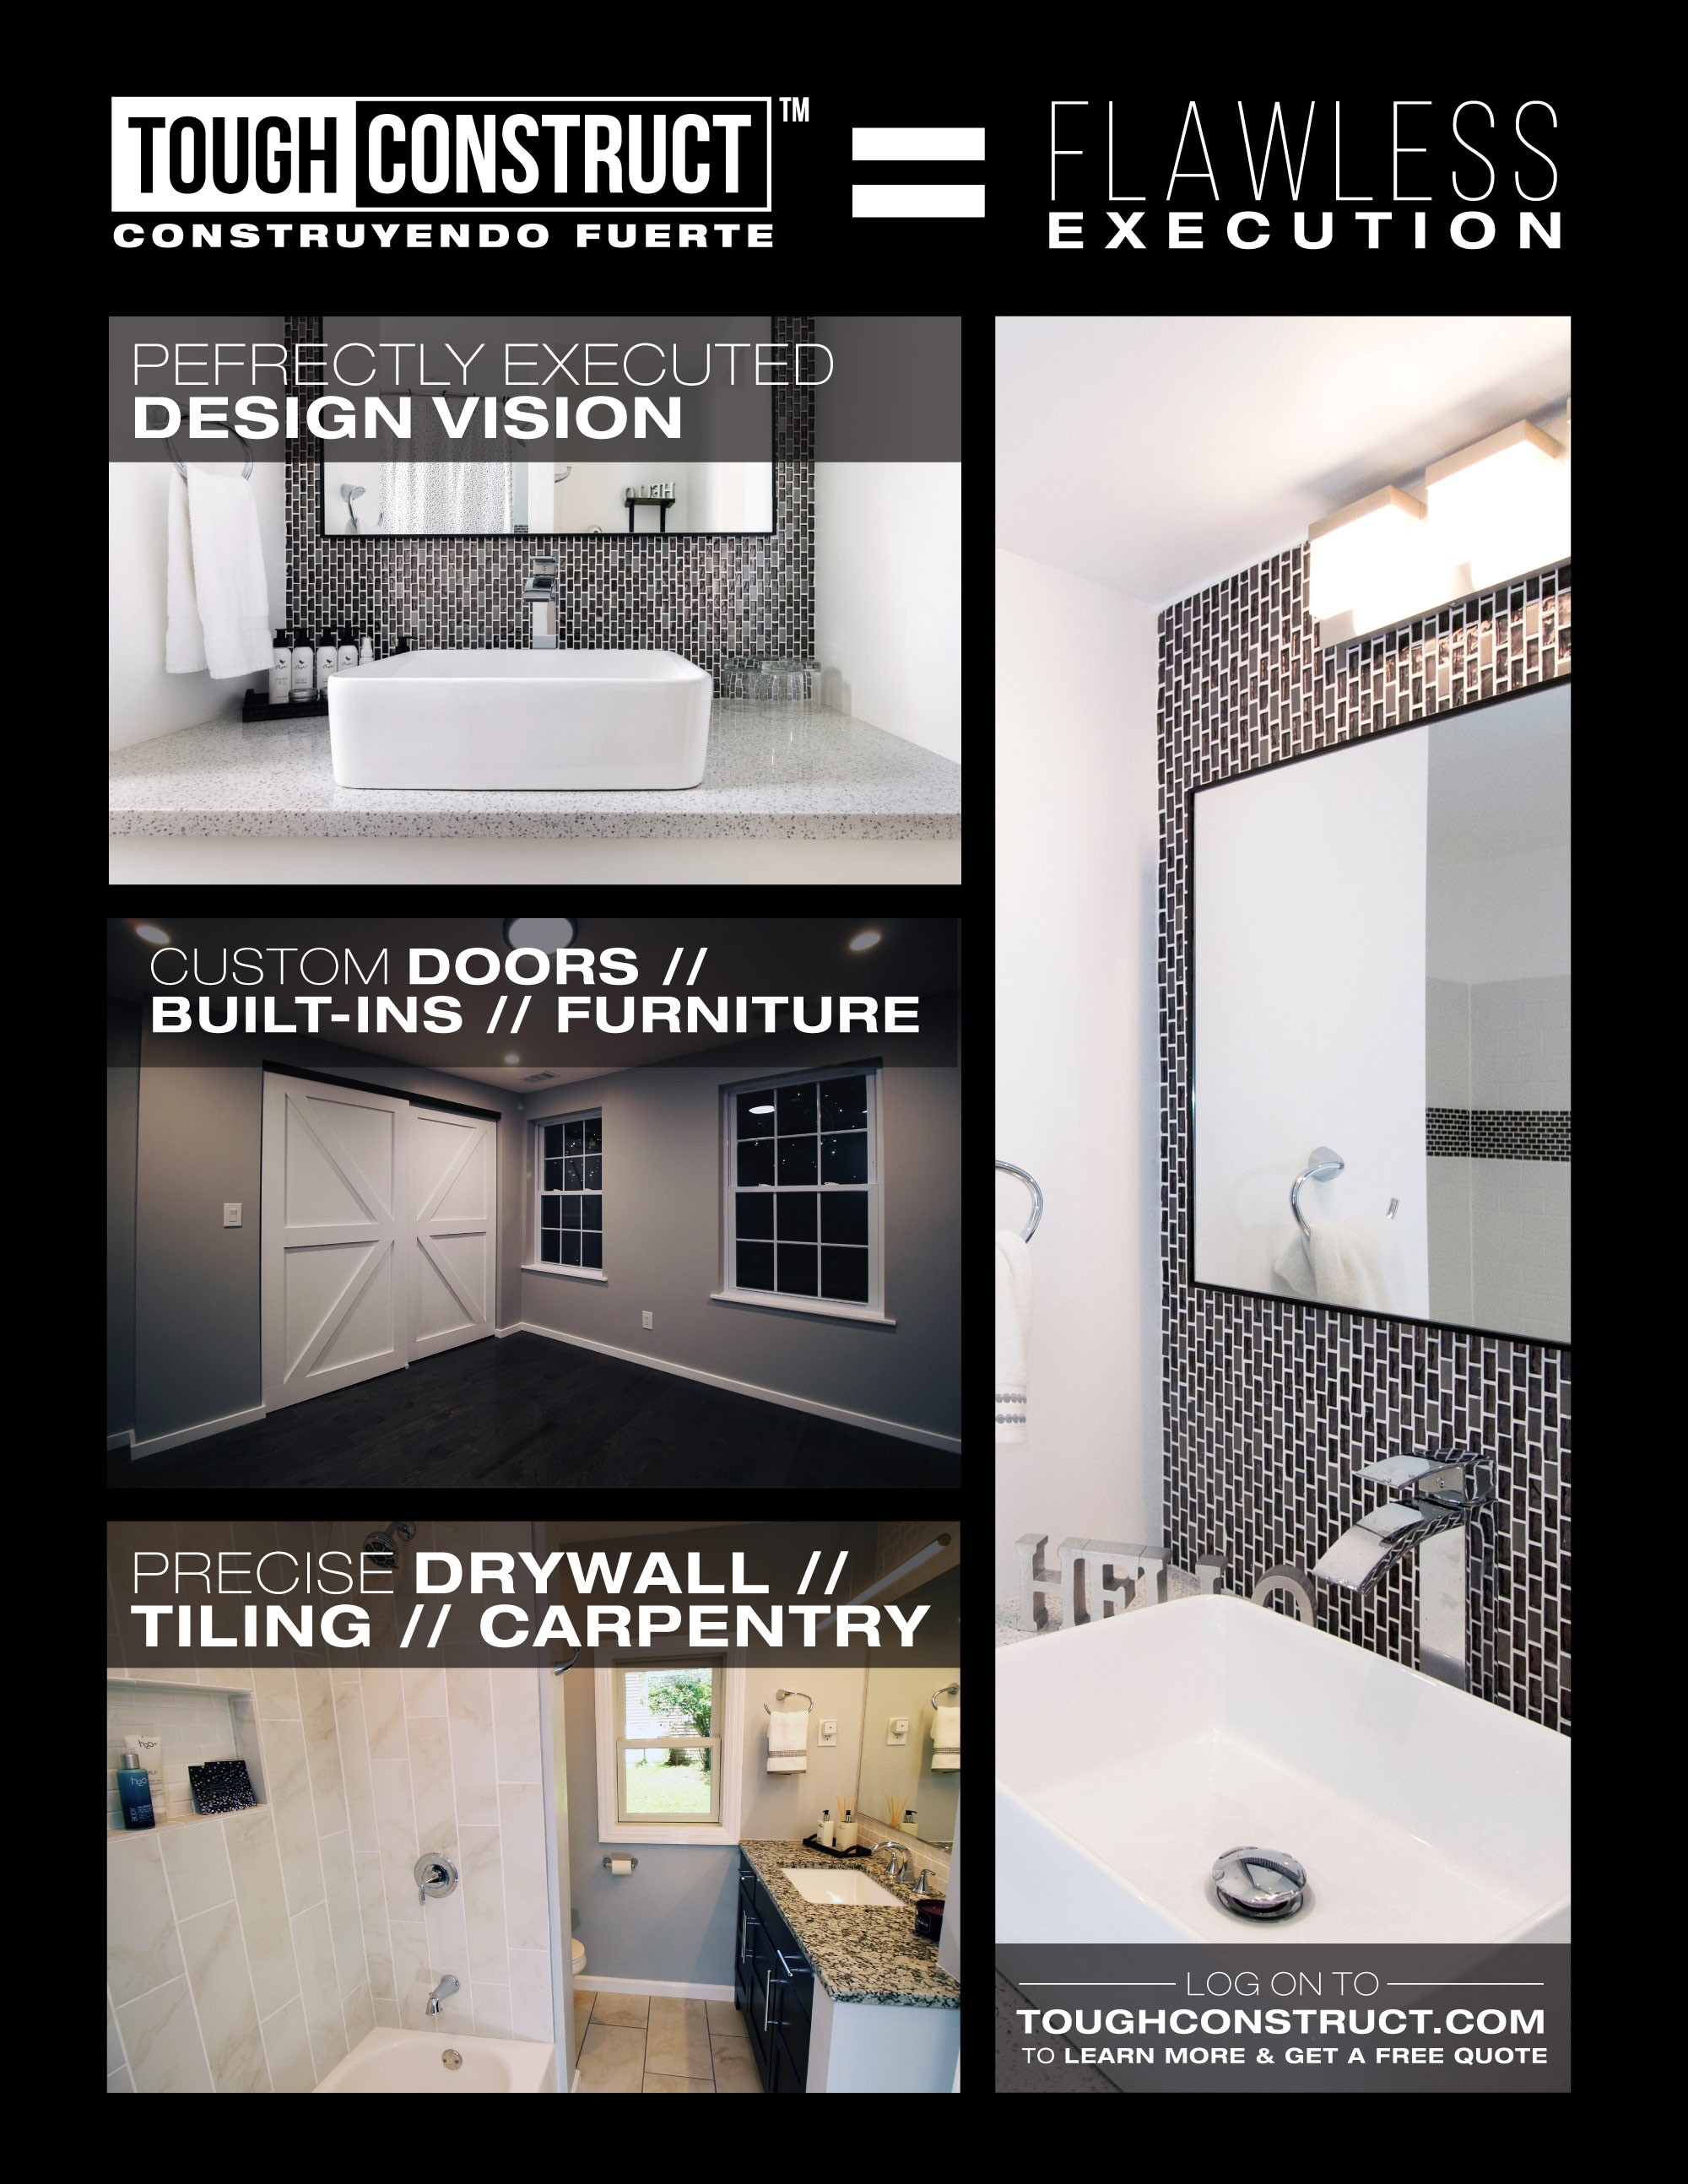 ToughConstruct Hudson Valley - Bathroom, Kitchen, Remodel, Home Improvement